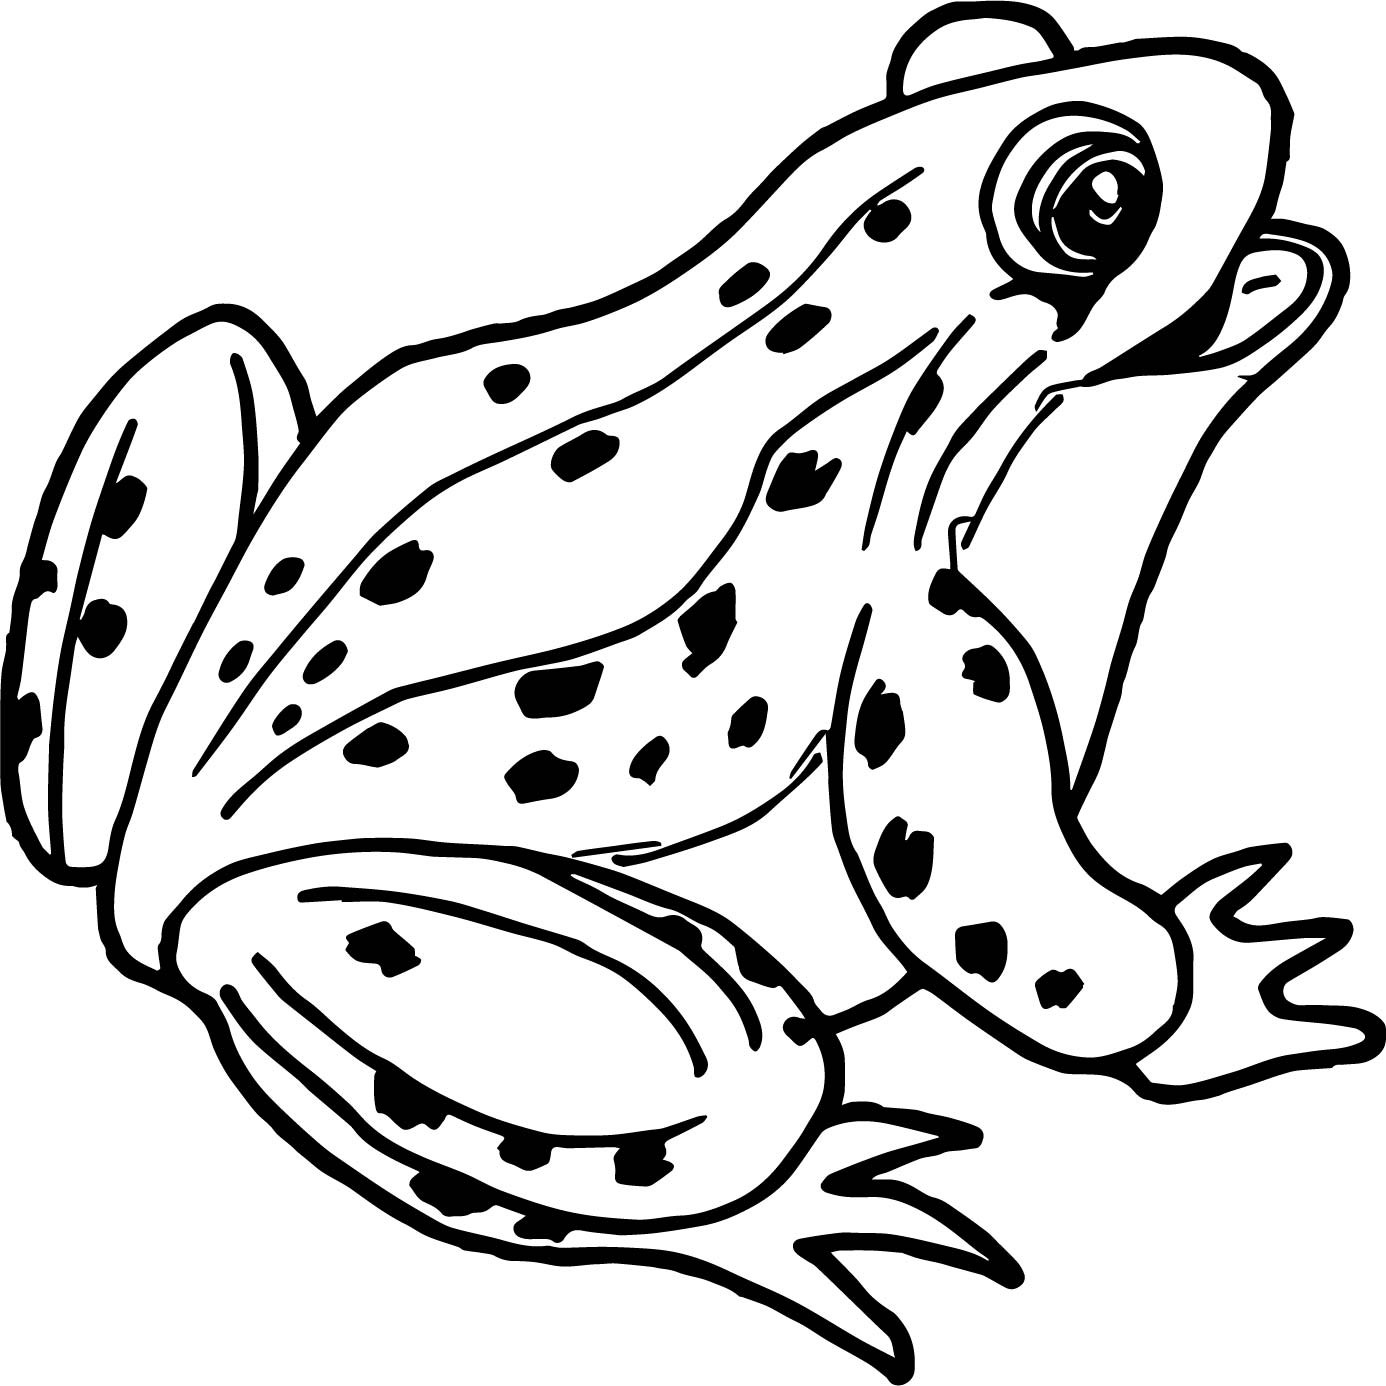 1386x1386 Authentic Frog Coloring Pages Funny Queen Prin